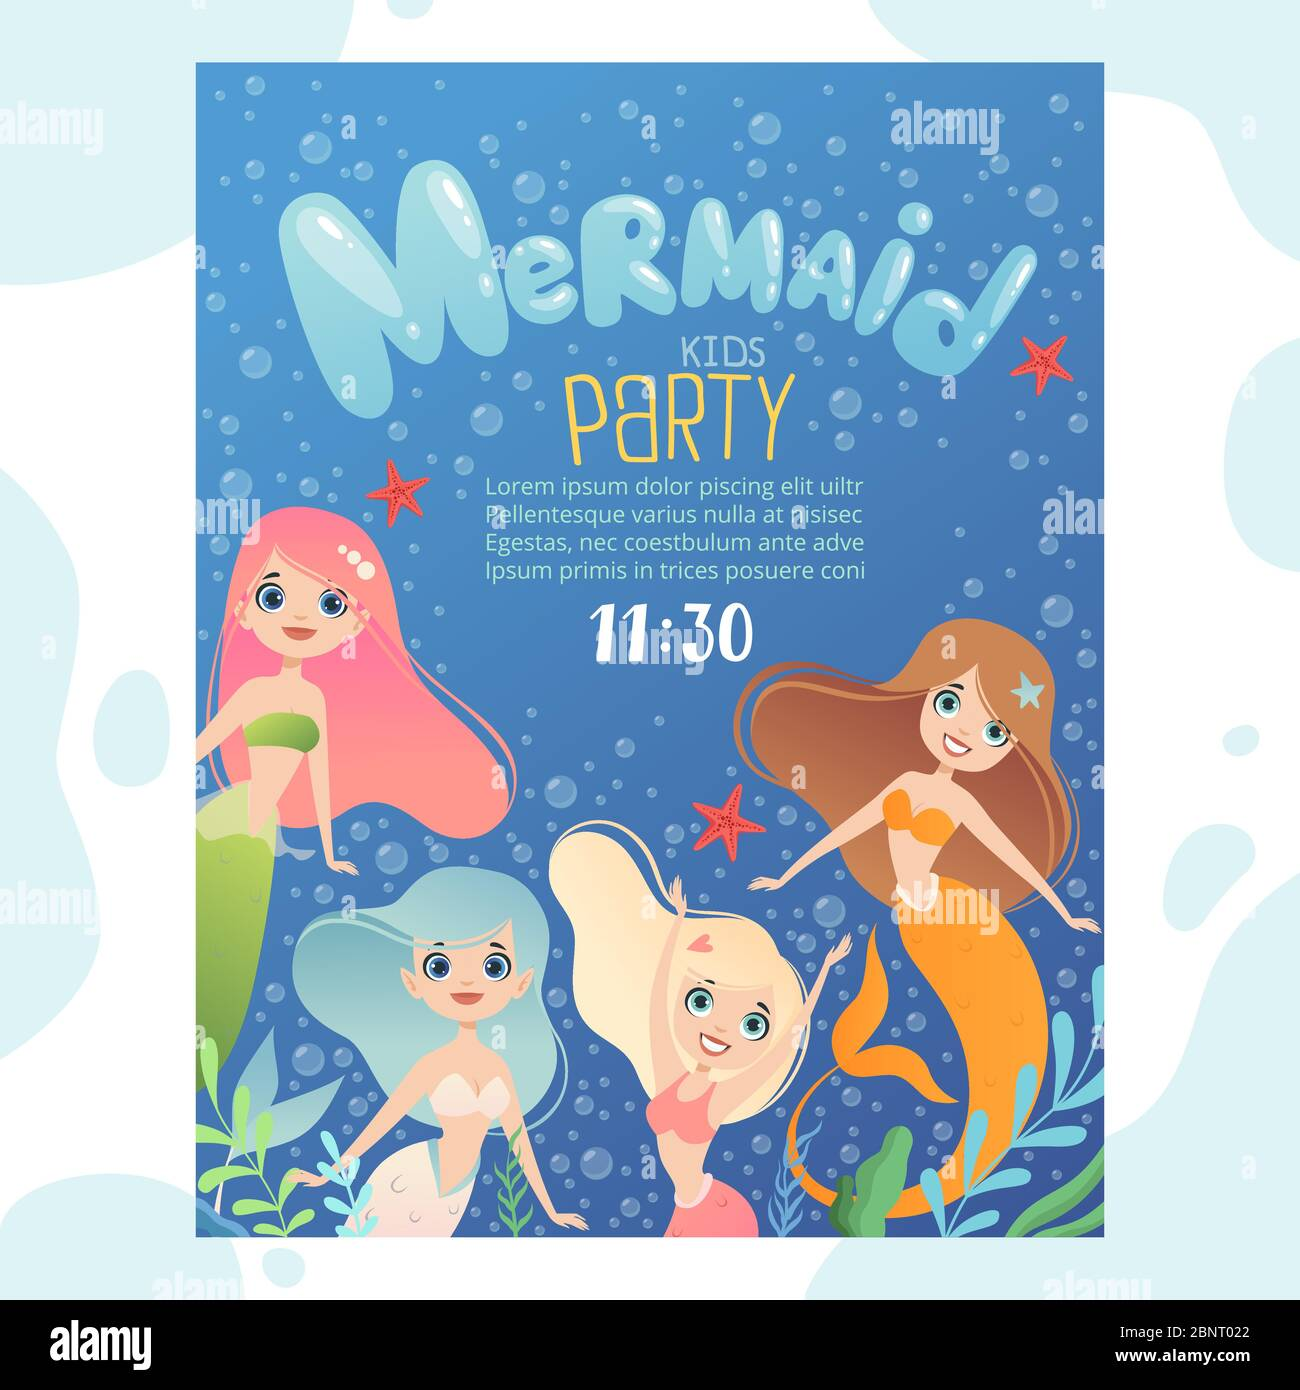 https www alamy com mermaid party invitation design template invite kids birthday cards with funny underwater characters fish and young mermaid princess image357642042 html